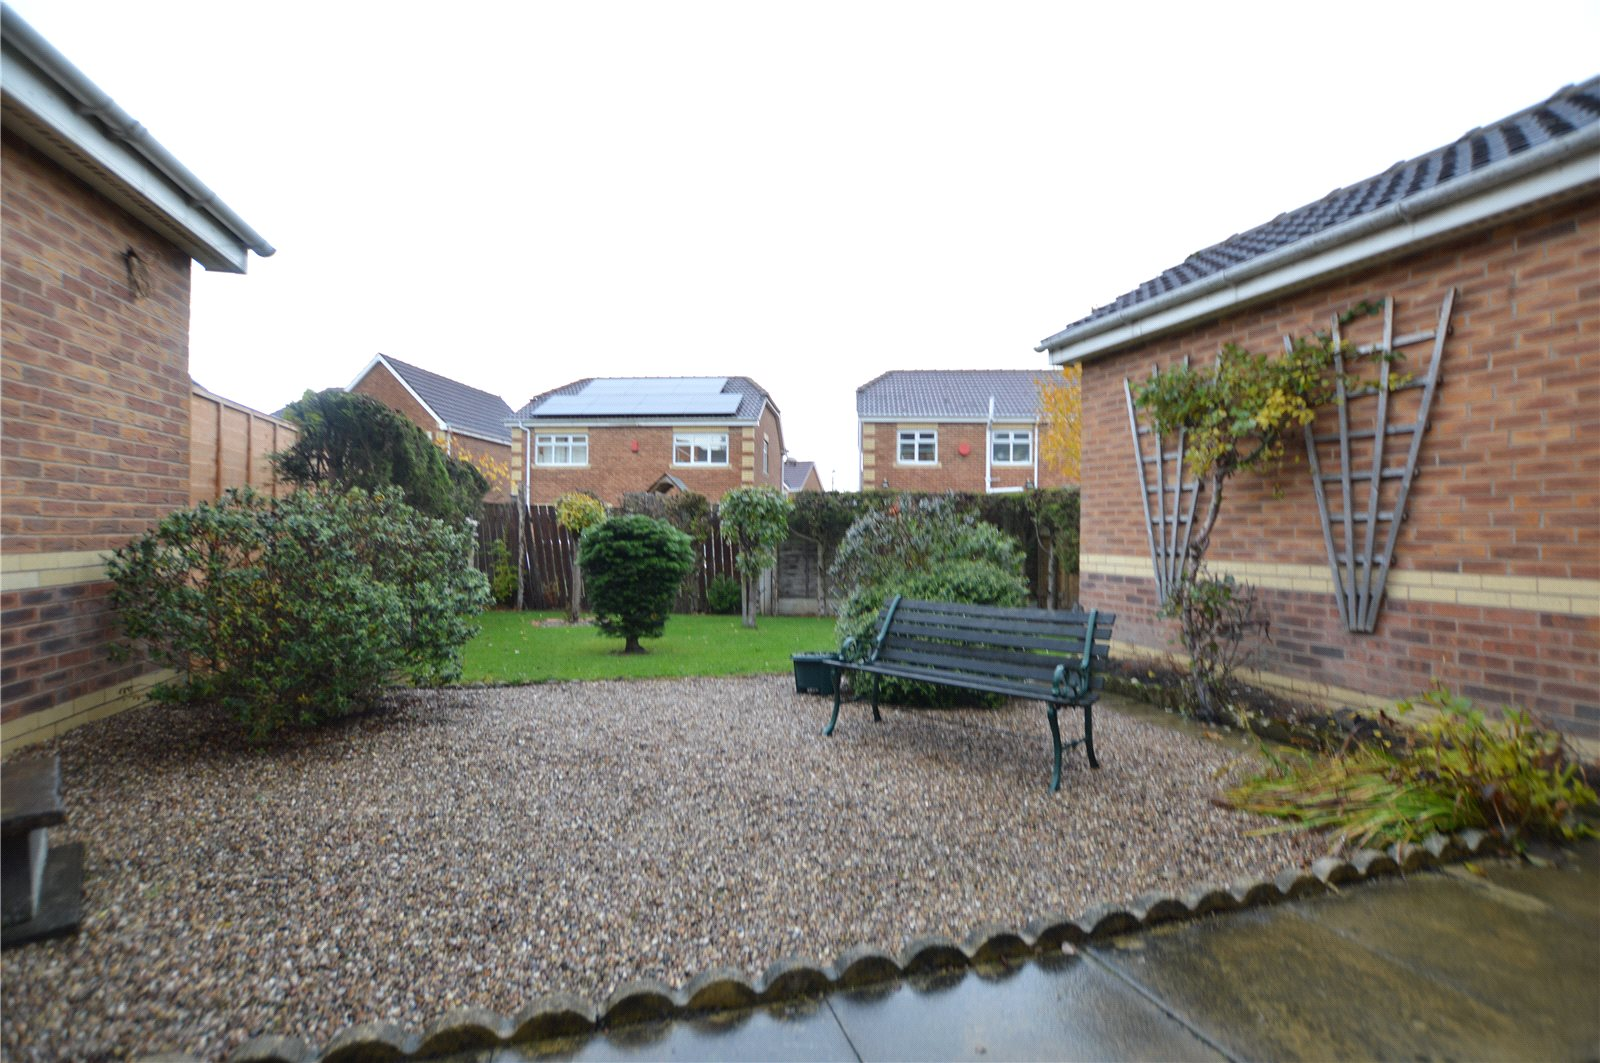 property for sale in Morley, exterior gravel and lawned garden